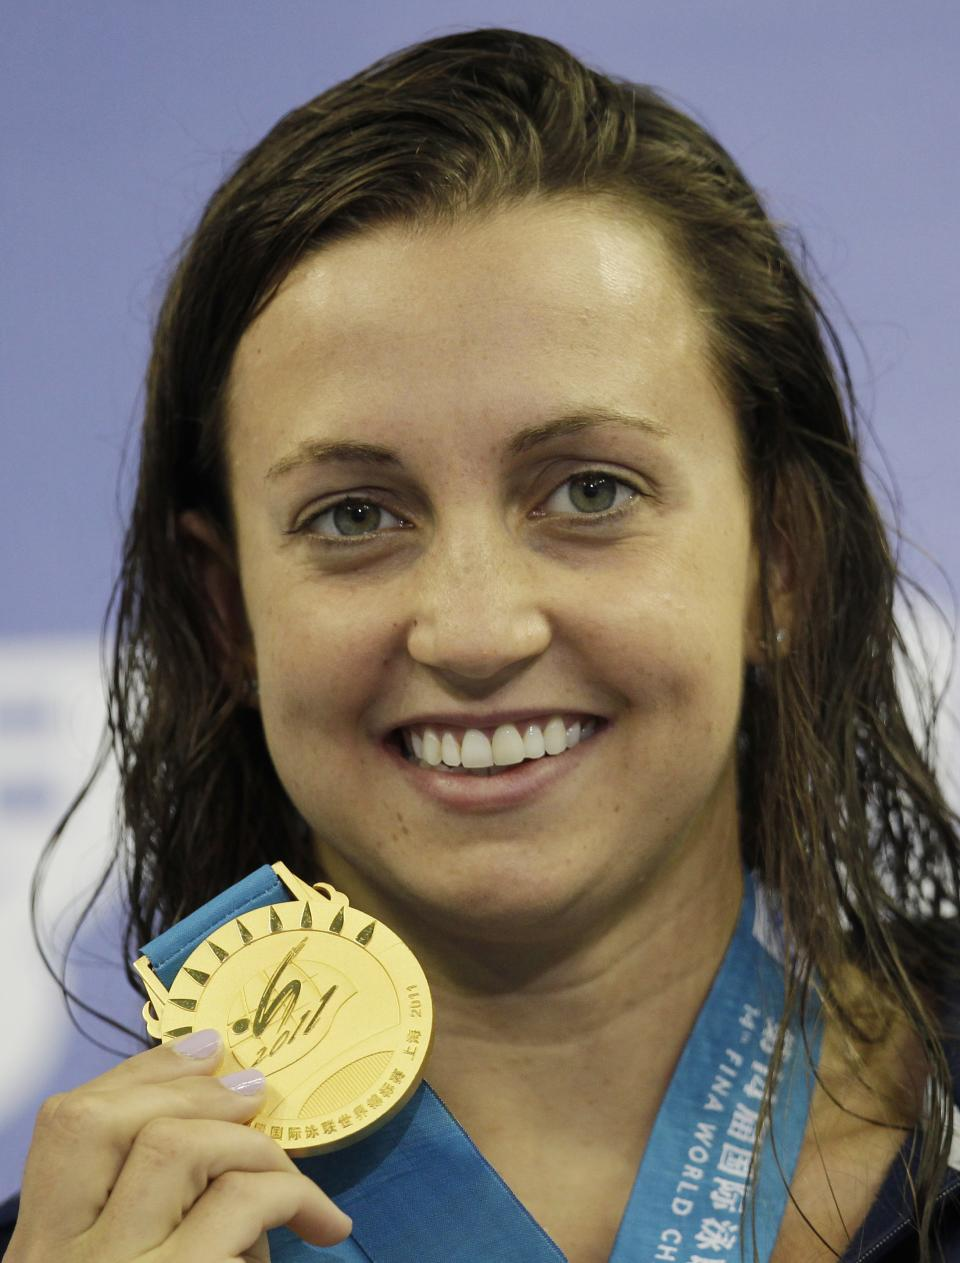 Rebecca Soni of the U.S. holds up her gold medal she won in the women's 100m Breaststoke event at the FINA Swimming World Championships in Shanghai, China, Tuesday, July 26, 2011. (AP Photo/Michael Sohn)